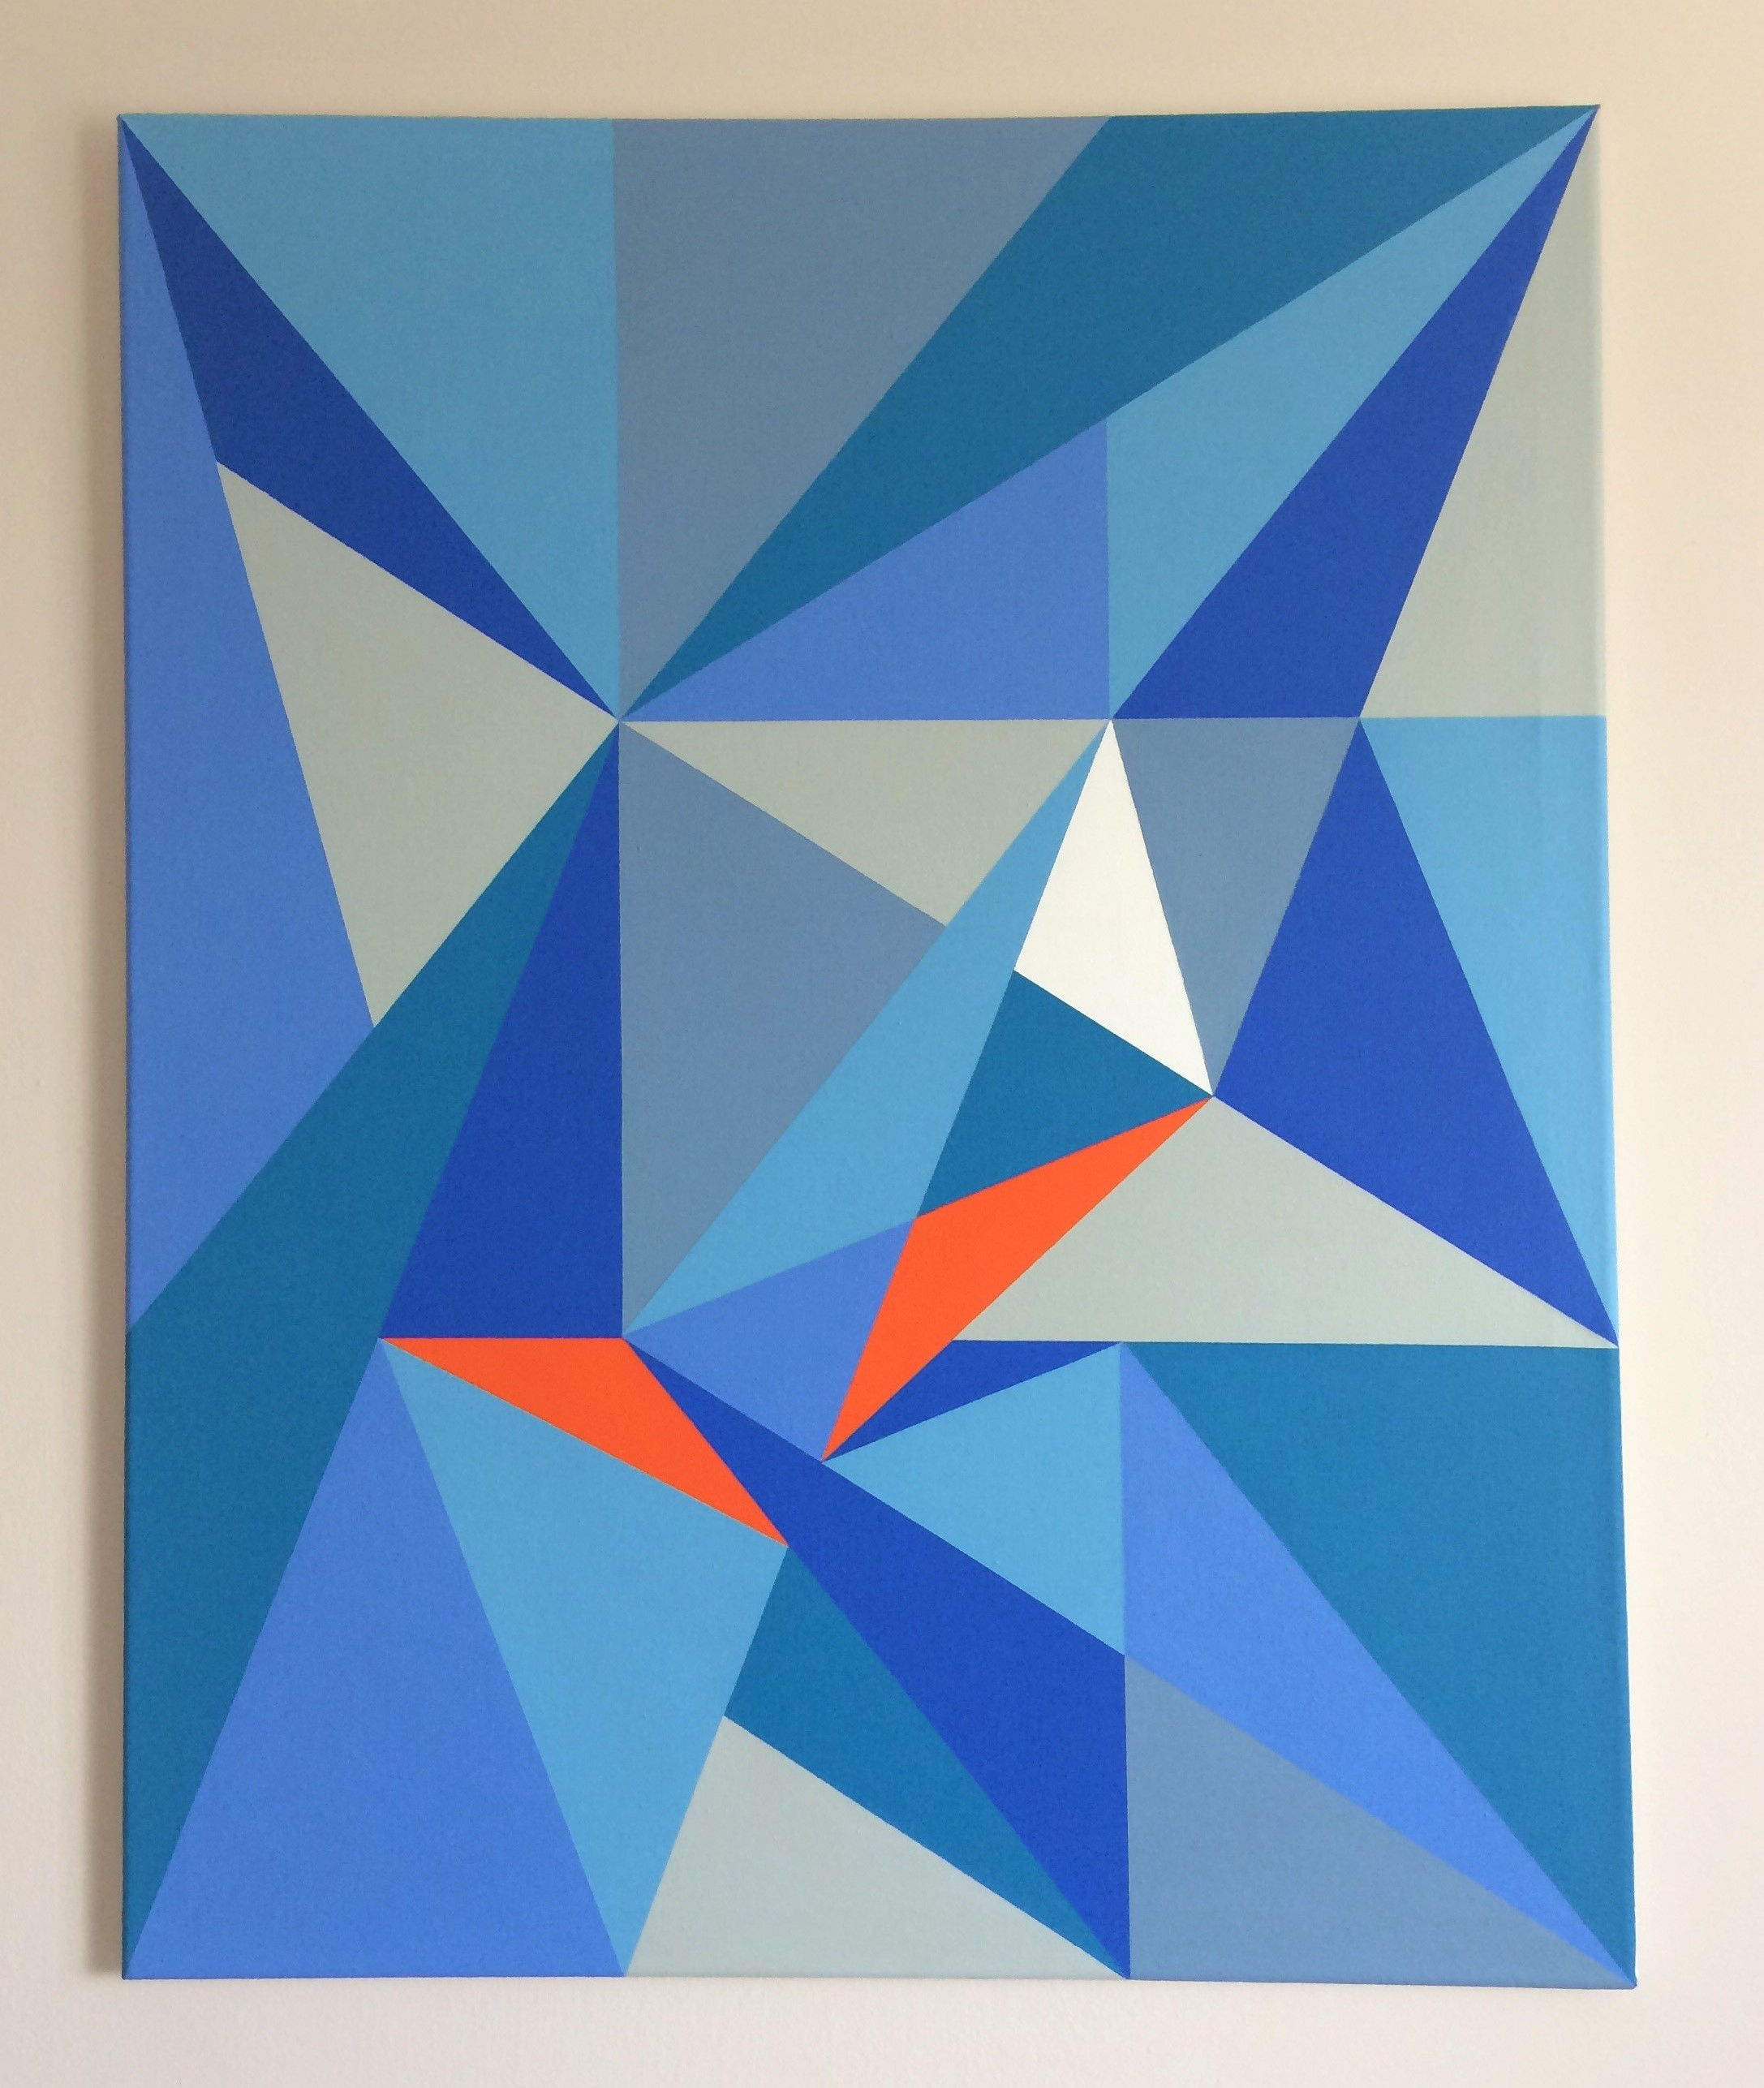 'Triangle Composition 1' (2020) Acrylic on Canvas (76 x 61 cm)